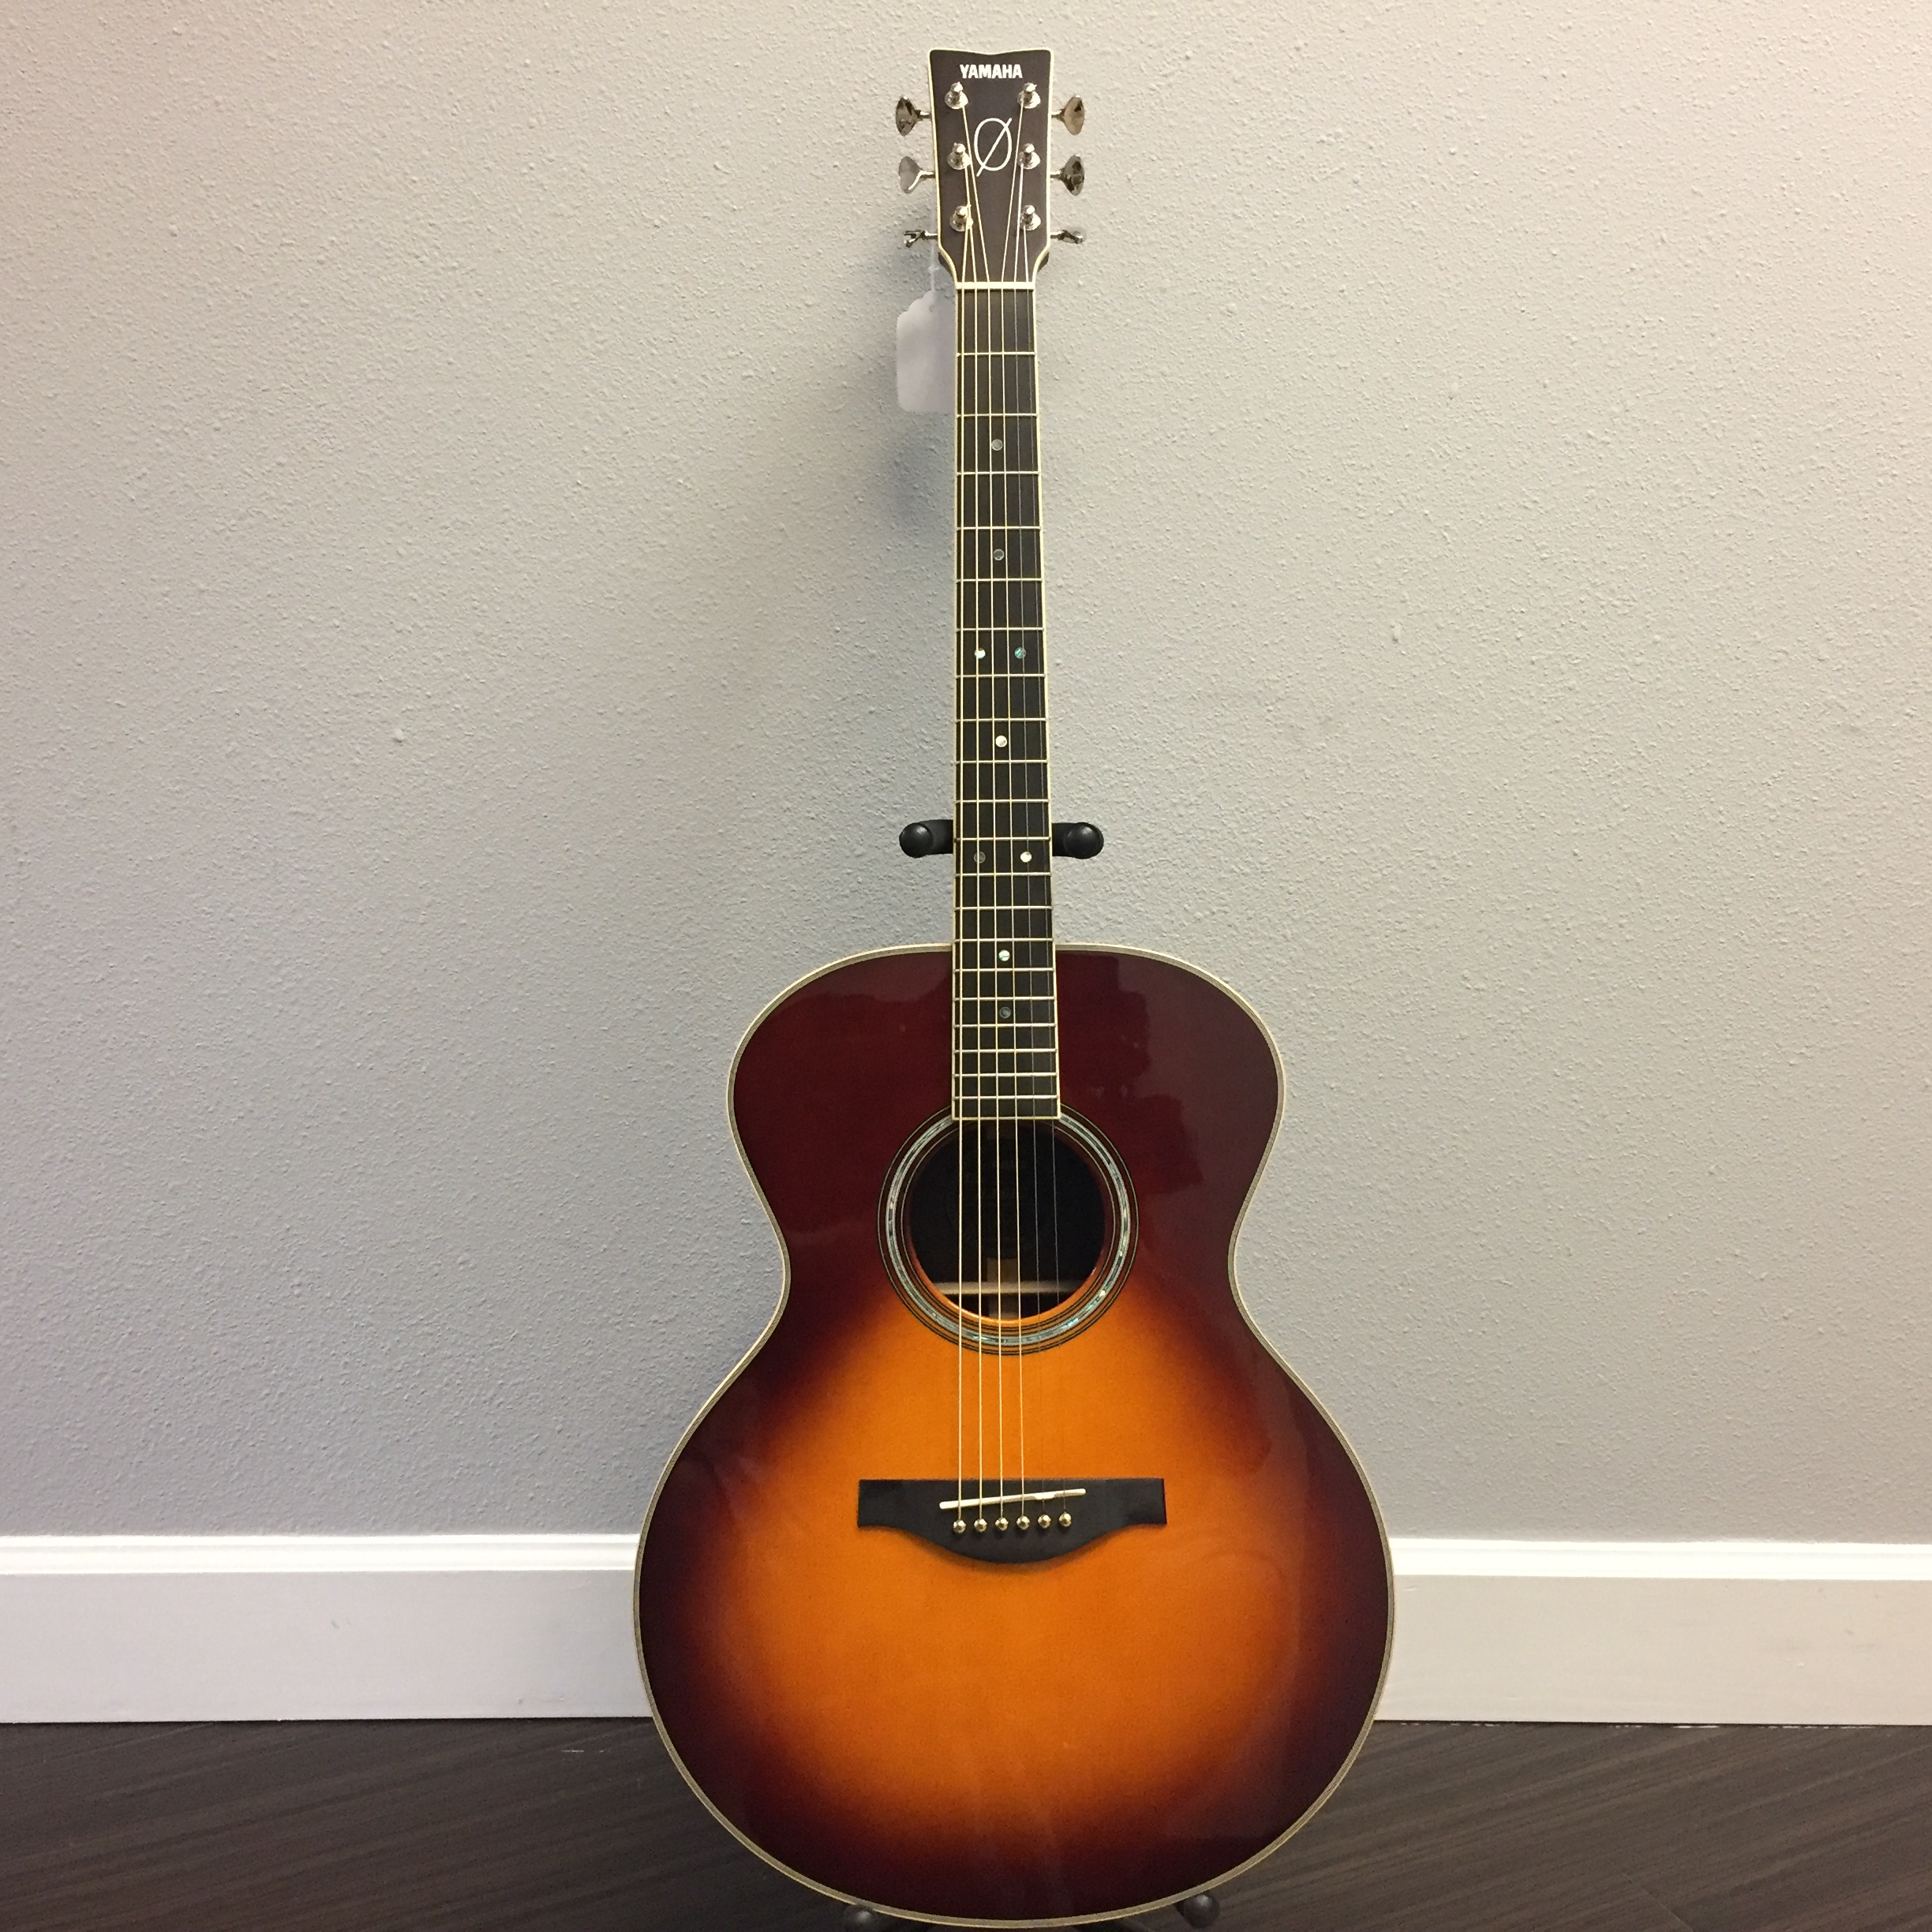 1 of 50 Billy Corgan Signature Acoustic